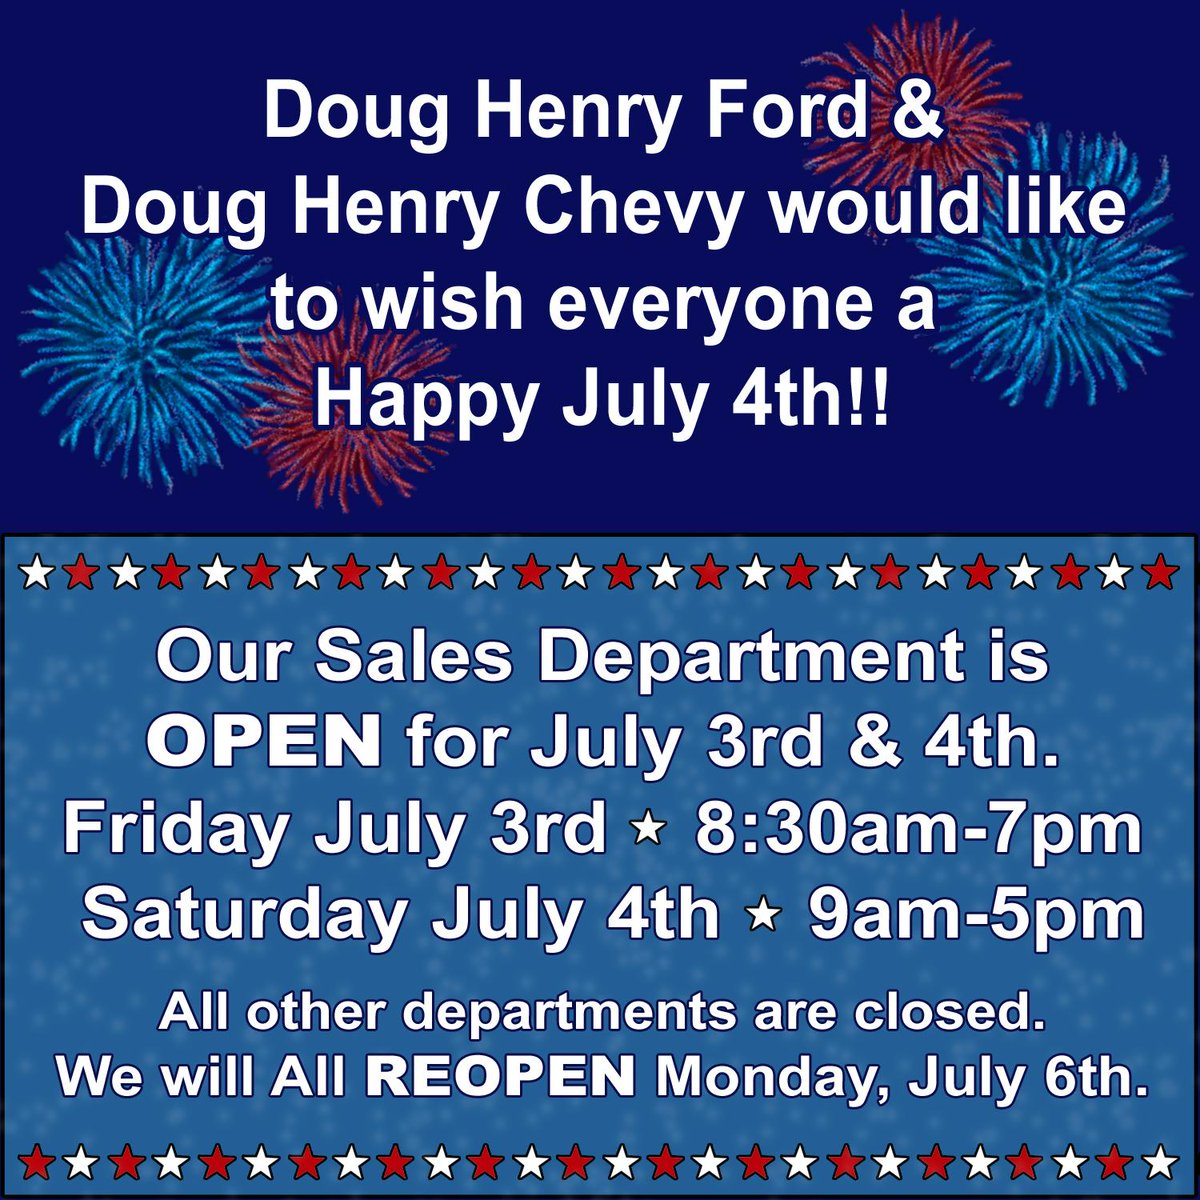 Doughenry Ford Chevy On Twitter Doug Henry Ford Chevy Would Like